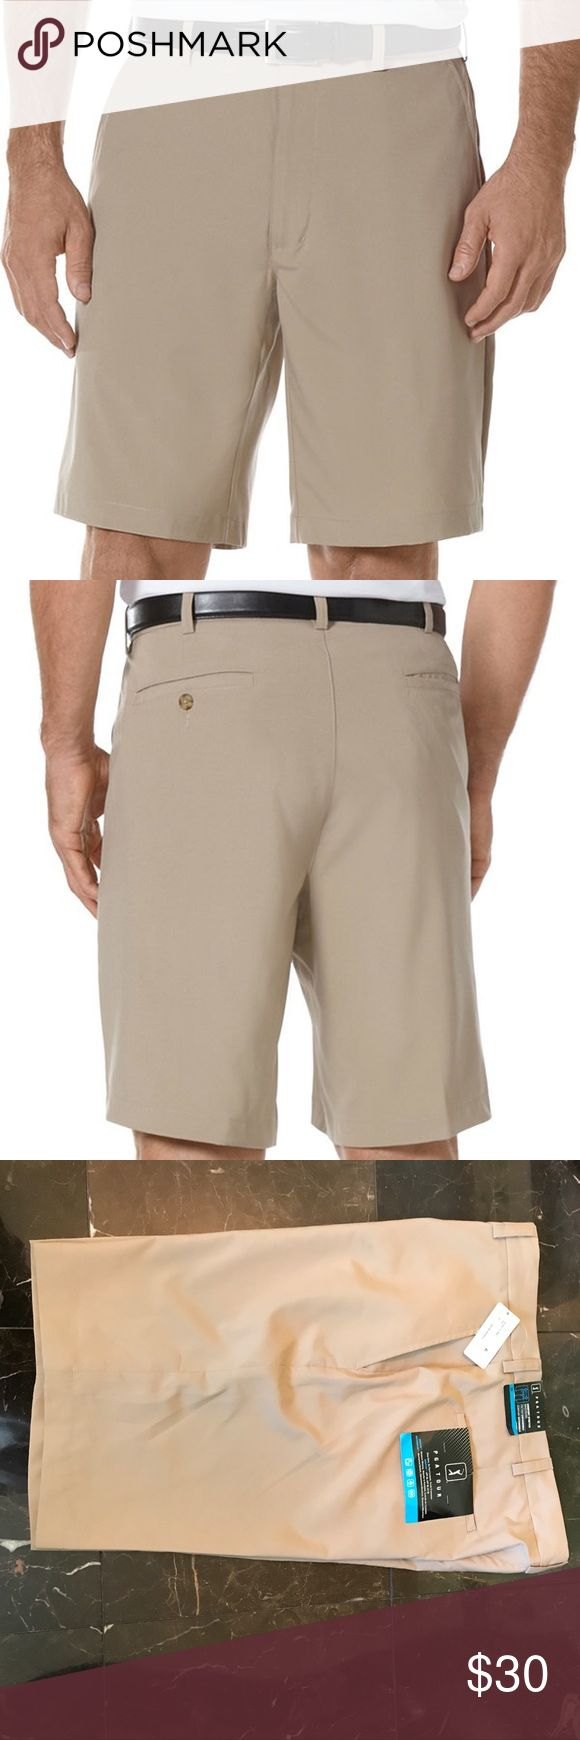 PGA Tour Performance Shorts These stylish shorts from the PGA tour collection keep you dry and on the move with moisture-wicking technology and mechanical stretch. Features: UPF 50+, flat front, 10-inch inseam, moisture-wicking, mechanical stretch, two front pockets and two back back welt pockets. PGA Tour Shorts Flat Front